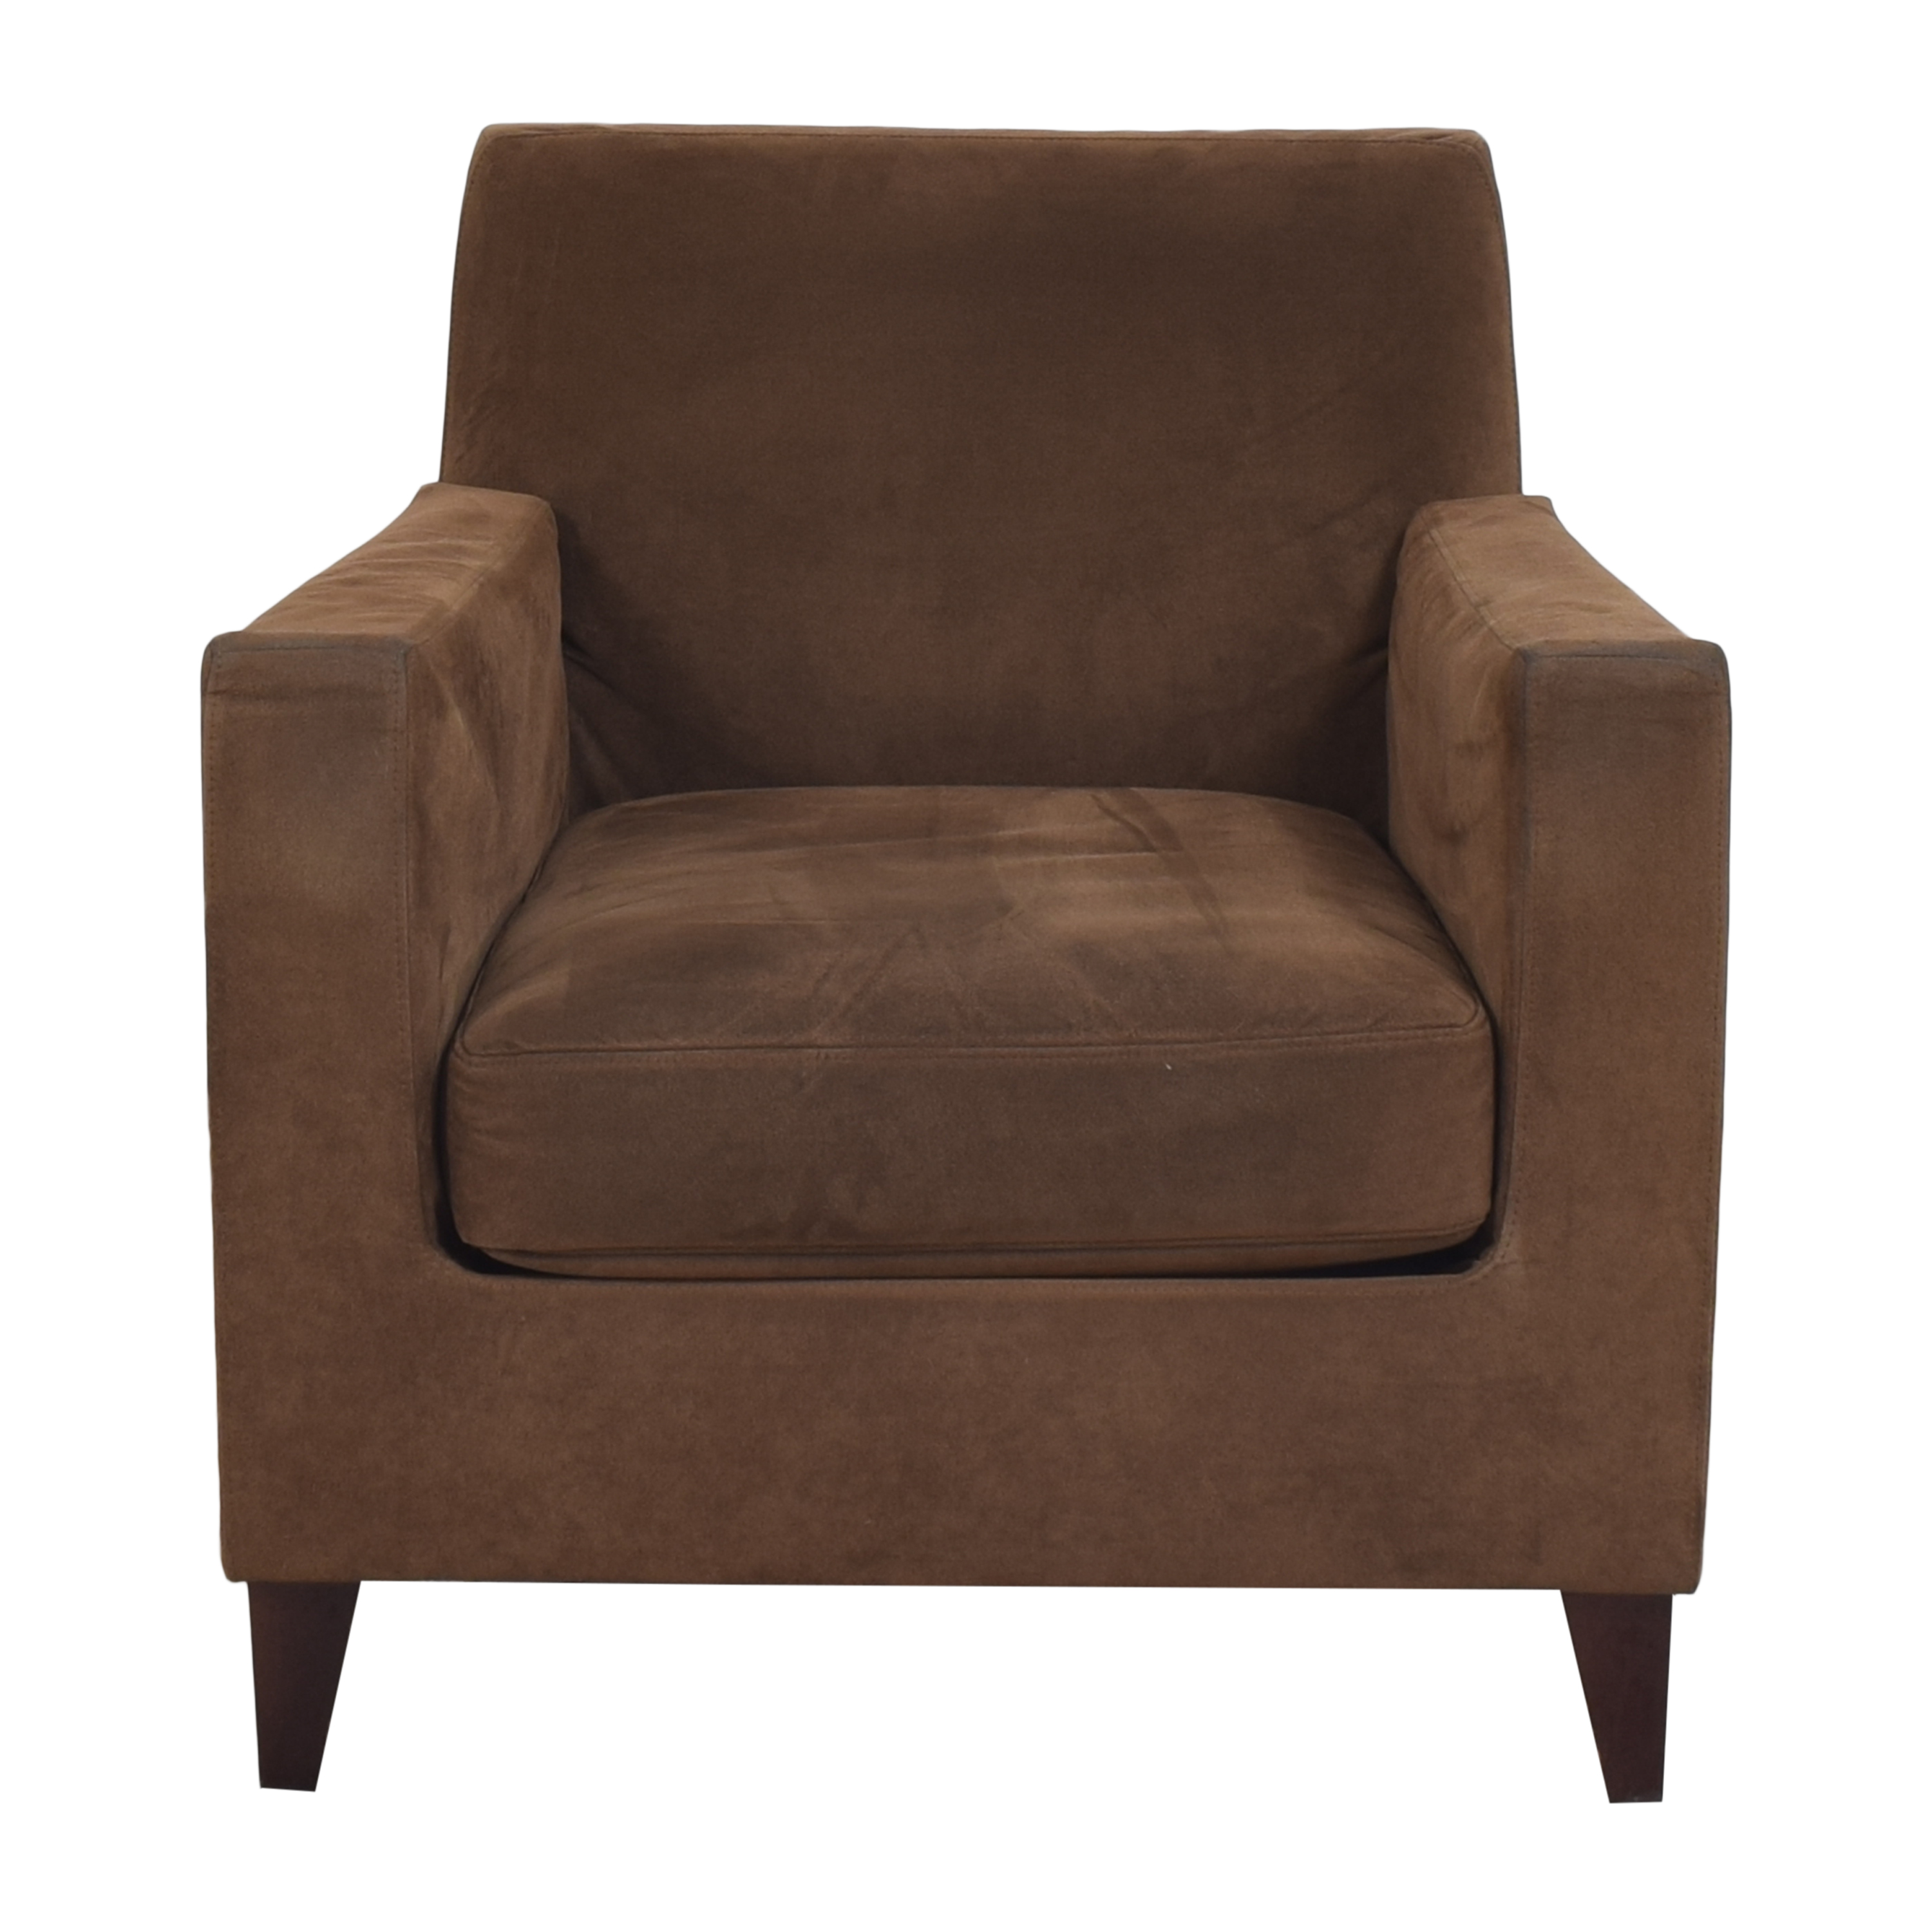 Ligne Roset Ligne Roset Modern Accent Chair coupon